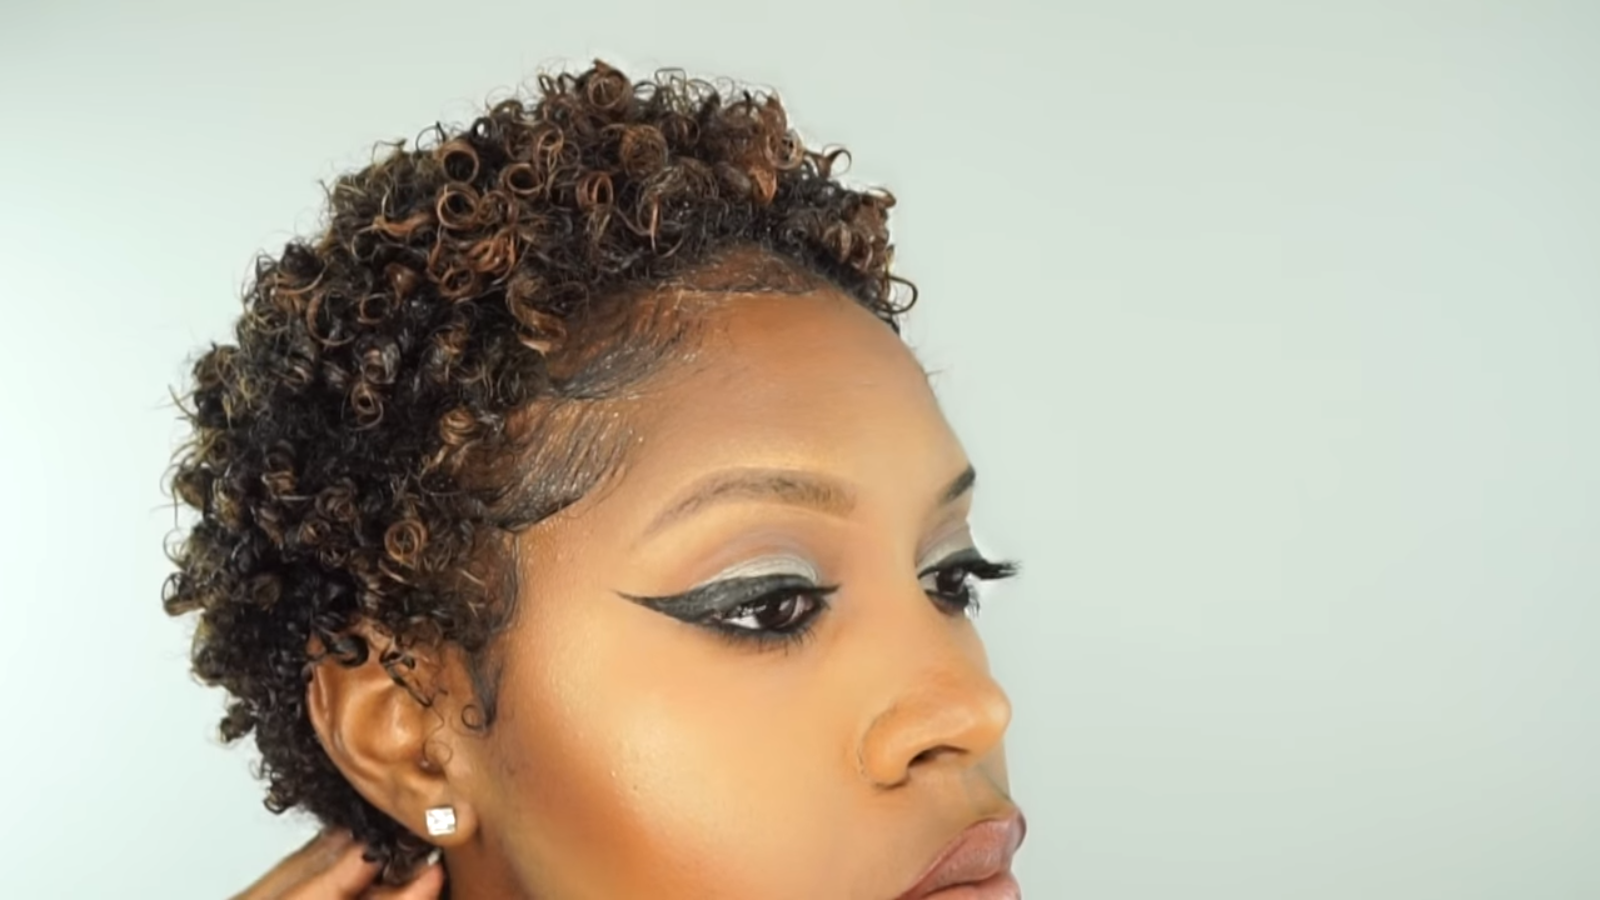 All Natural Hair Styles: A Guide To Choosing Short Or Medium Hairstyles For Black Women